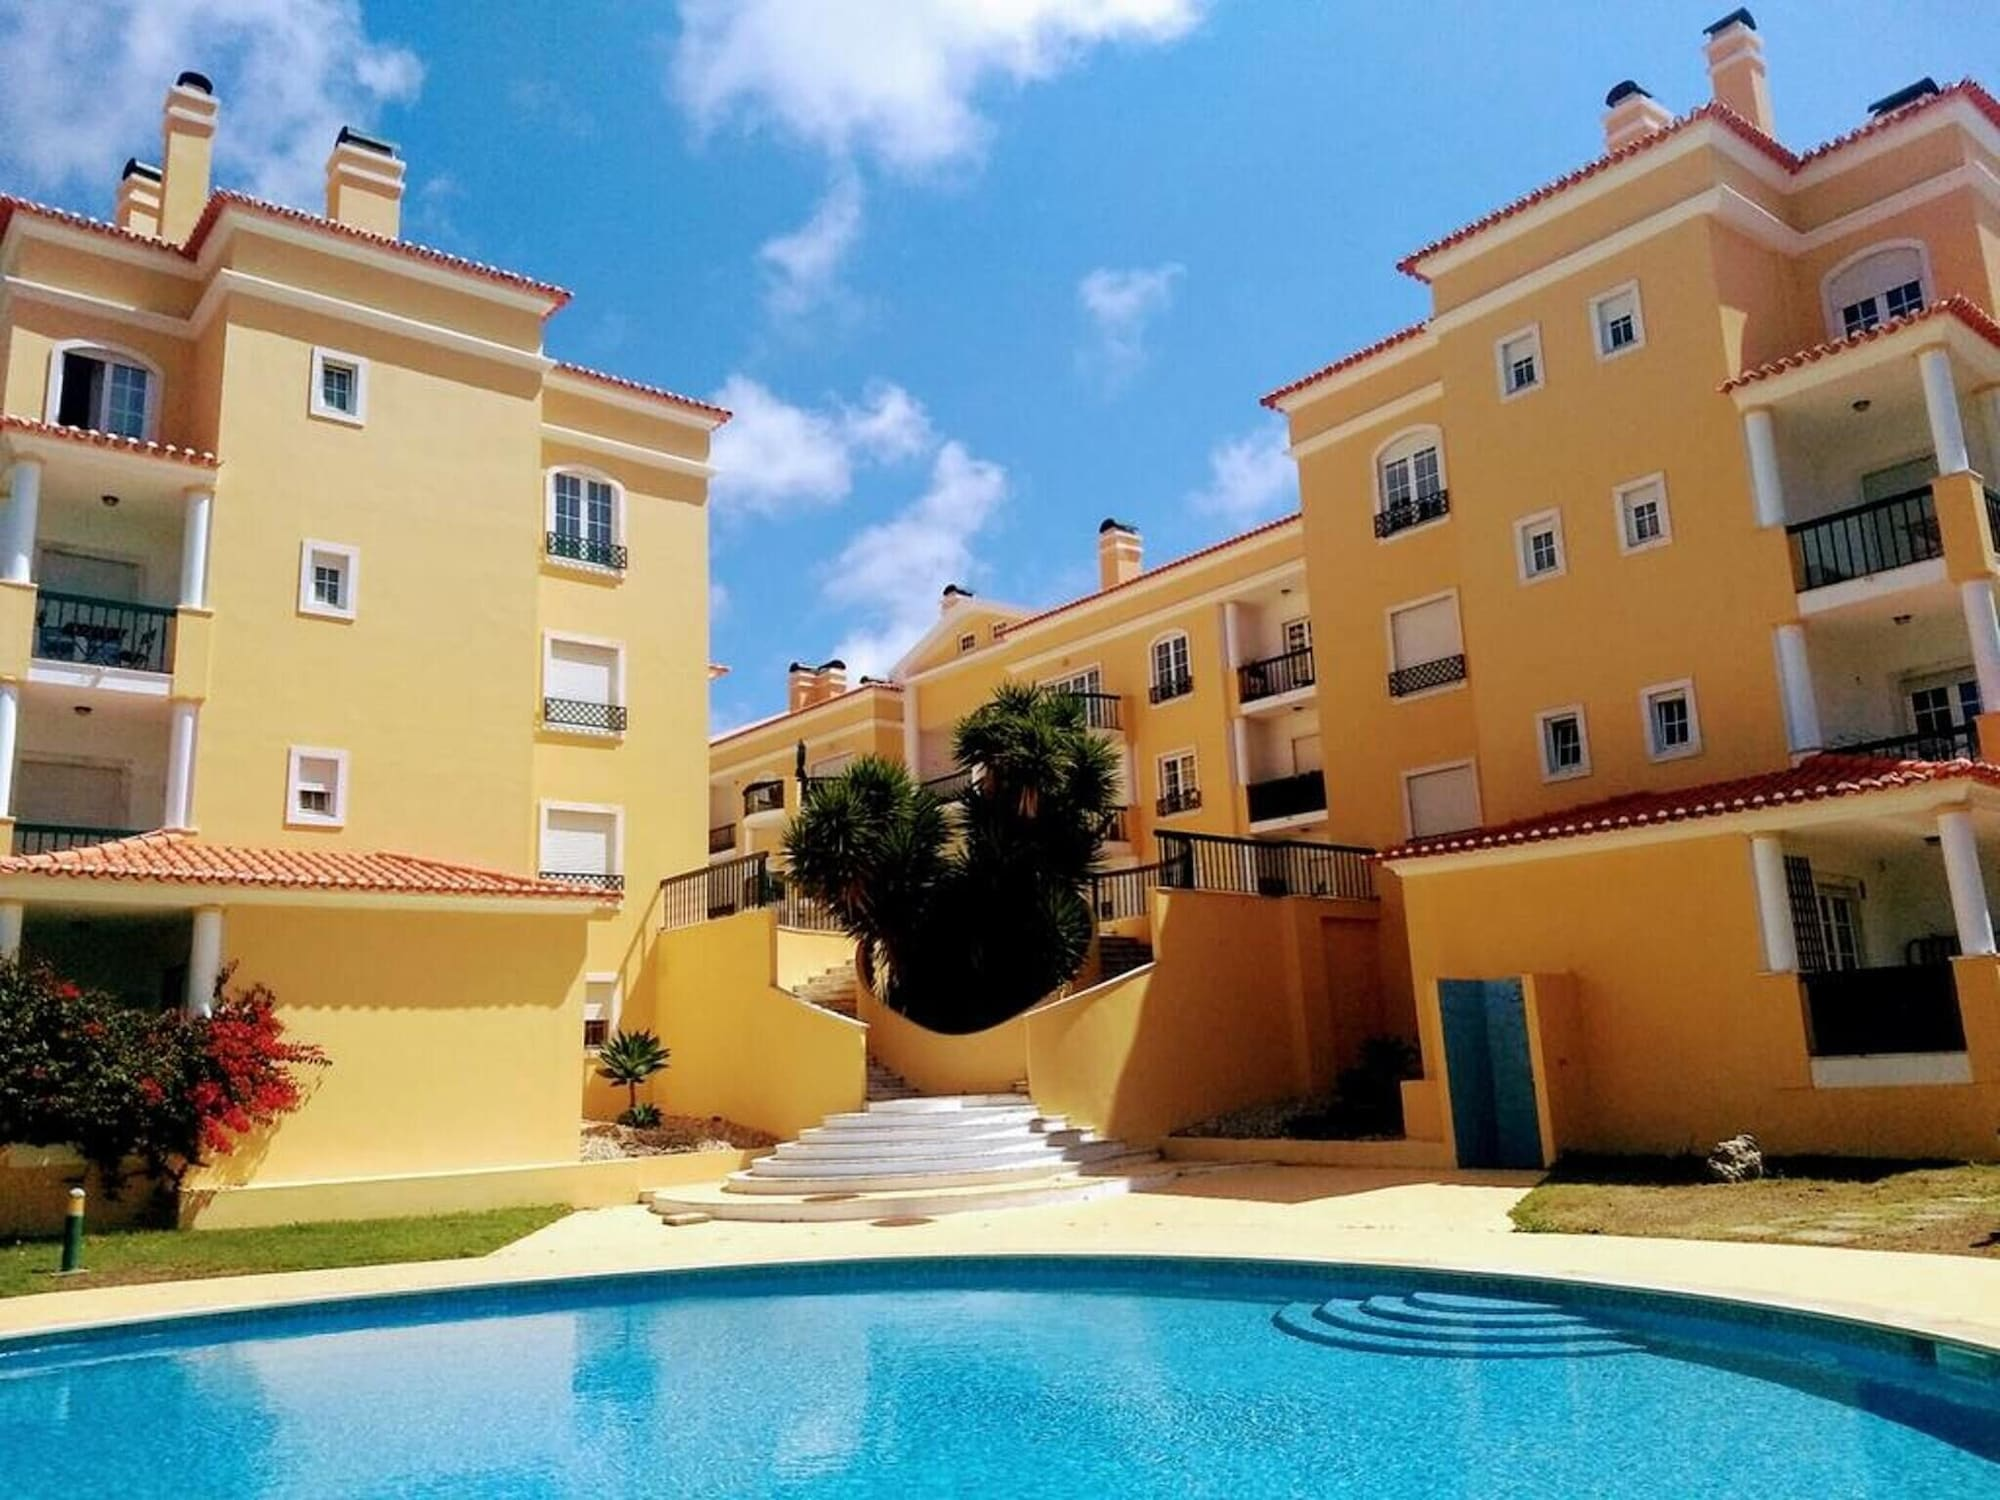 Apartment With 2 Bedrooms in Alcabideche, With Wonderful City View, Pool Access and Enclosed Garden - 2 km From the Beach, Cascais